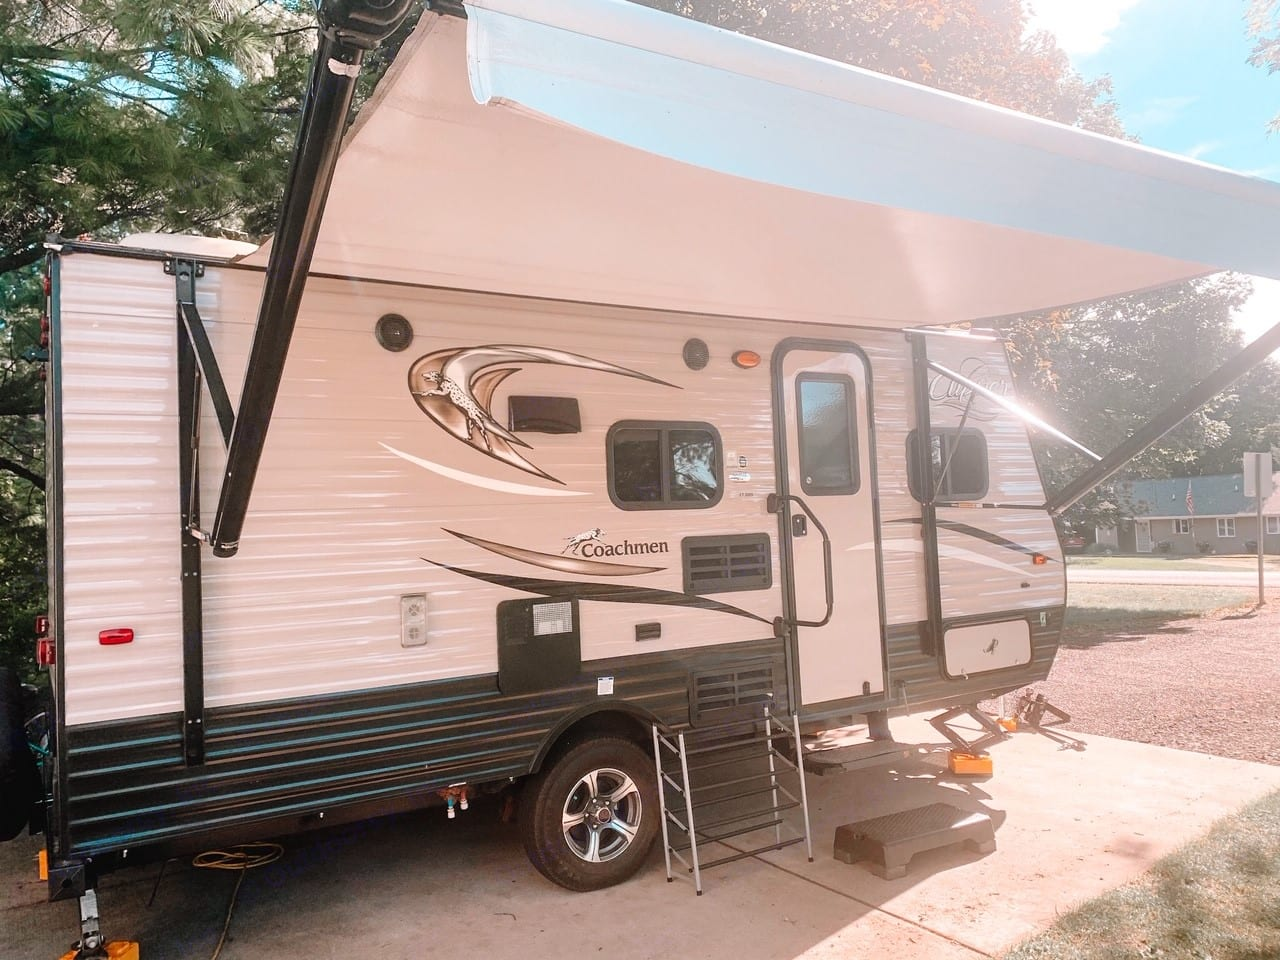 Power awning out. Coachmen Clipper 2018